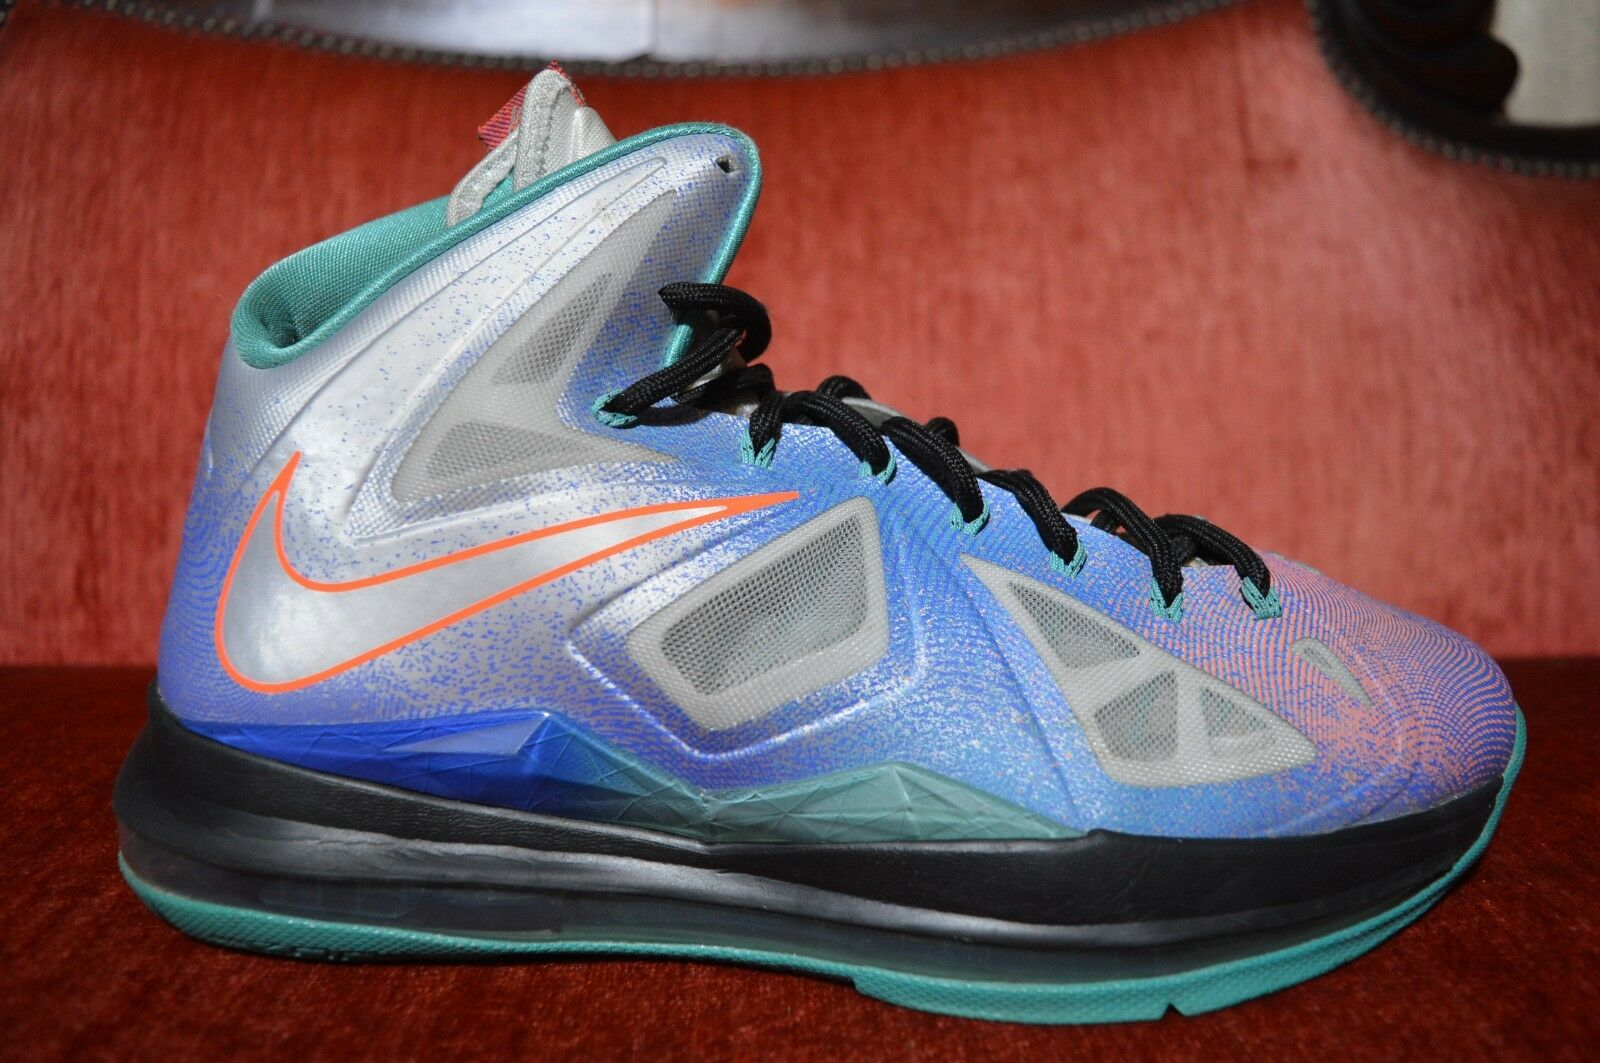 Nike LeBron X 10 Re-Entry Pure 008 Platinum Size 9.5 541100 008 Pure Grey Blue Green 368f55